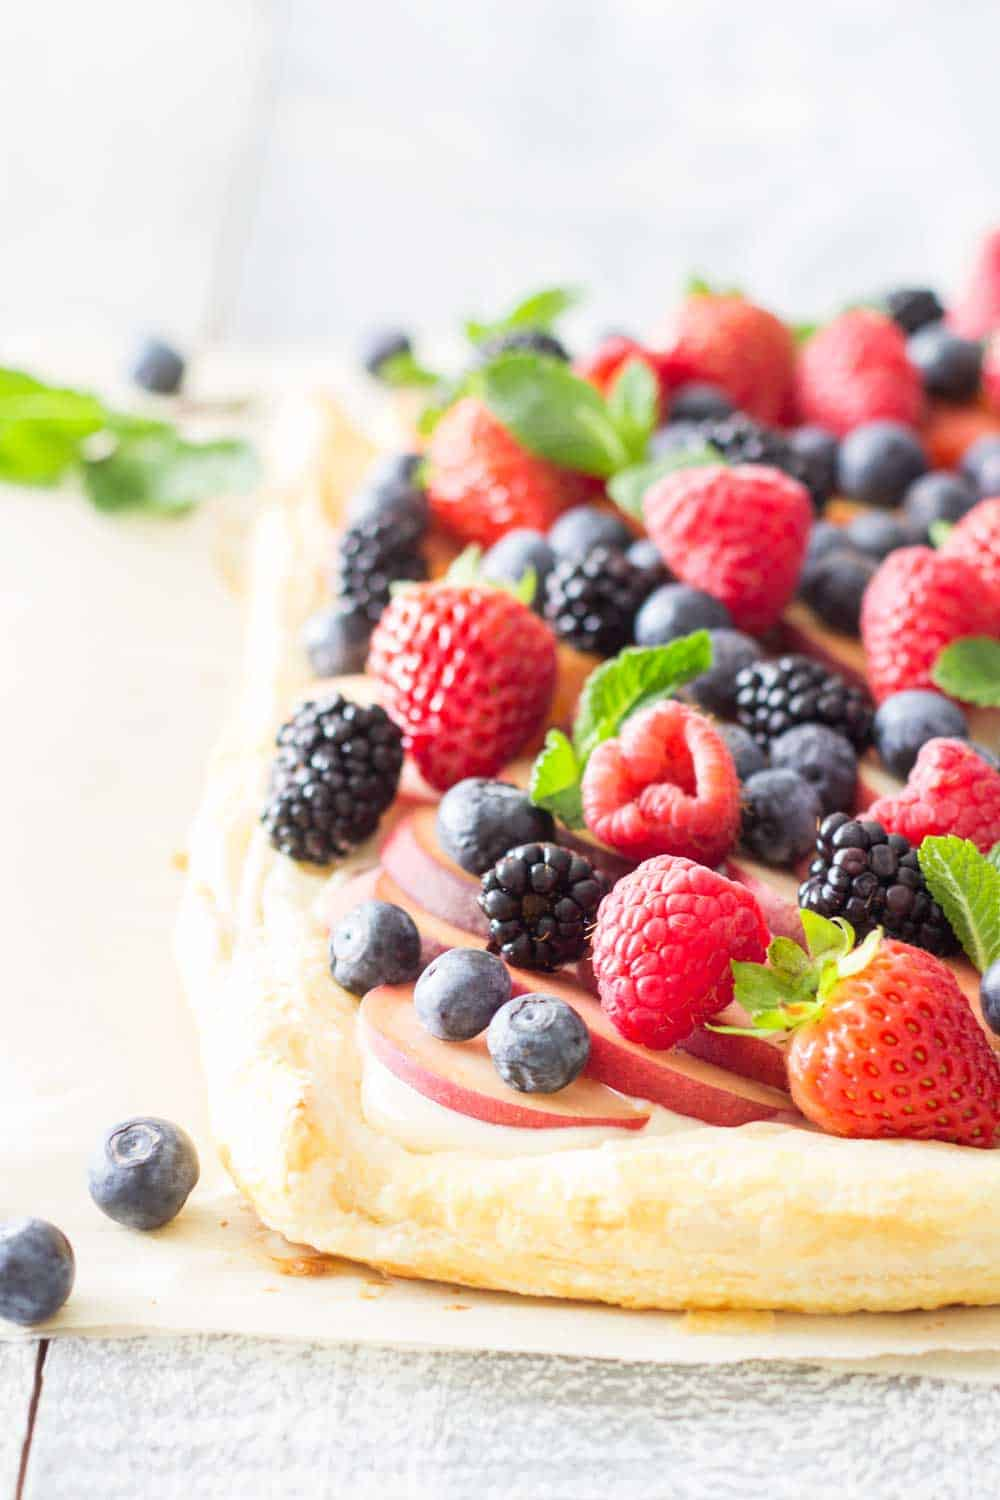 Close up of Summer Fruit Tart with peach slices, blueberries, blackberries, raspberries, and strawberries, to show texture.